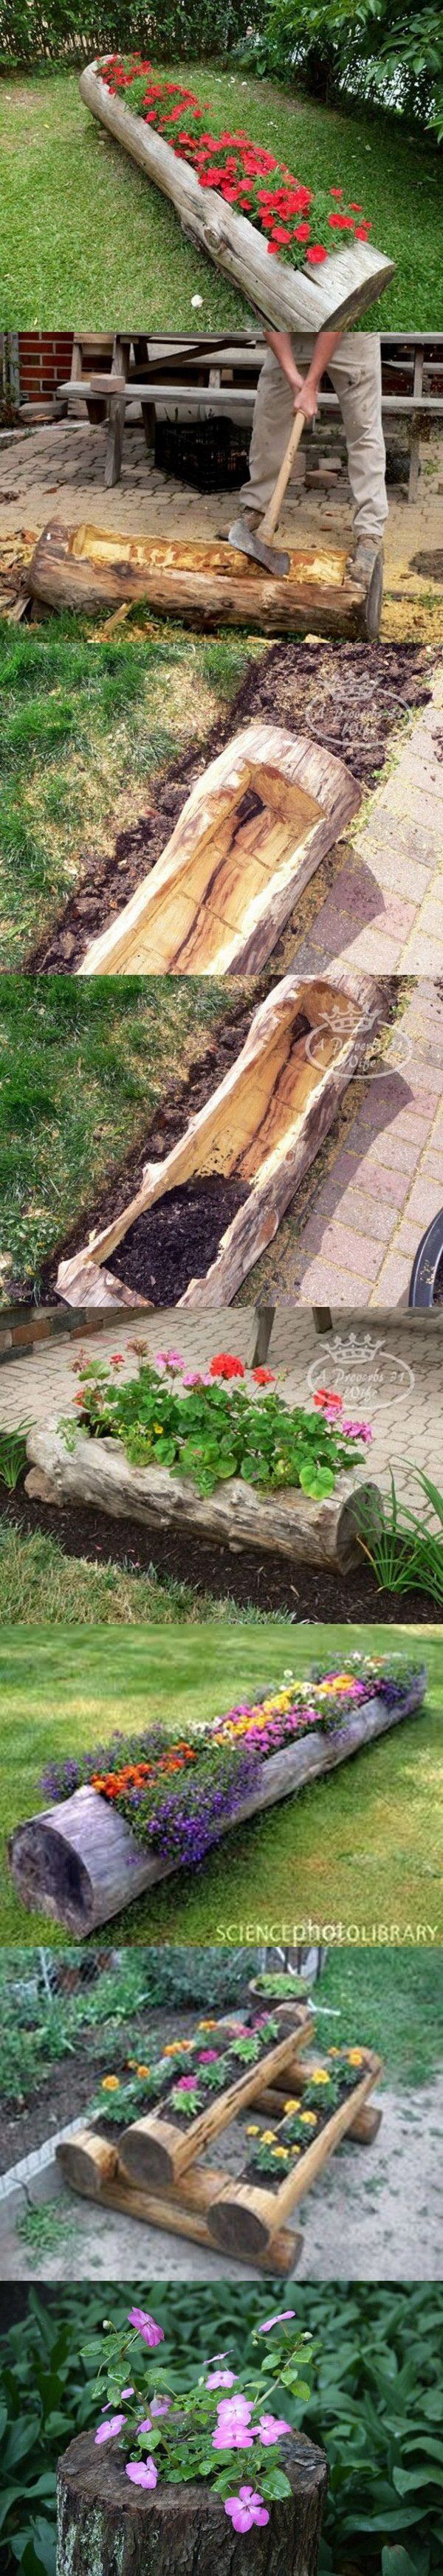 35 Creative Garden Hacks And Tips 20